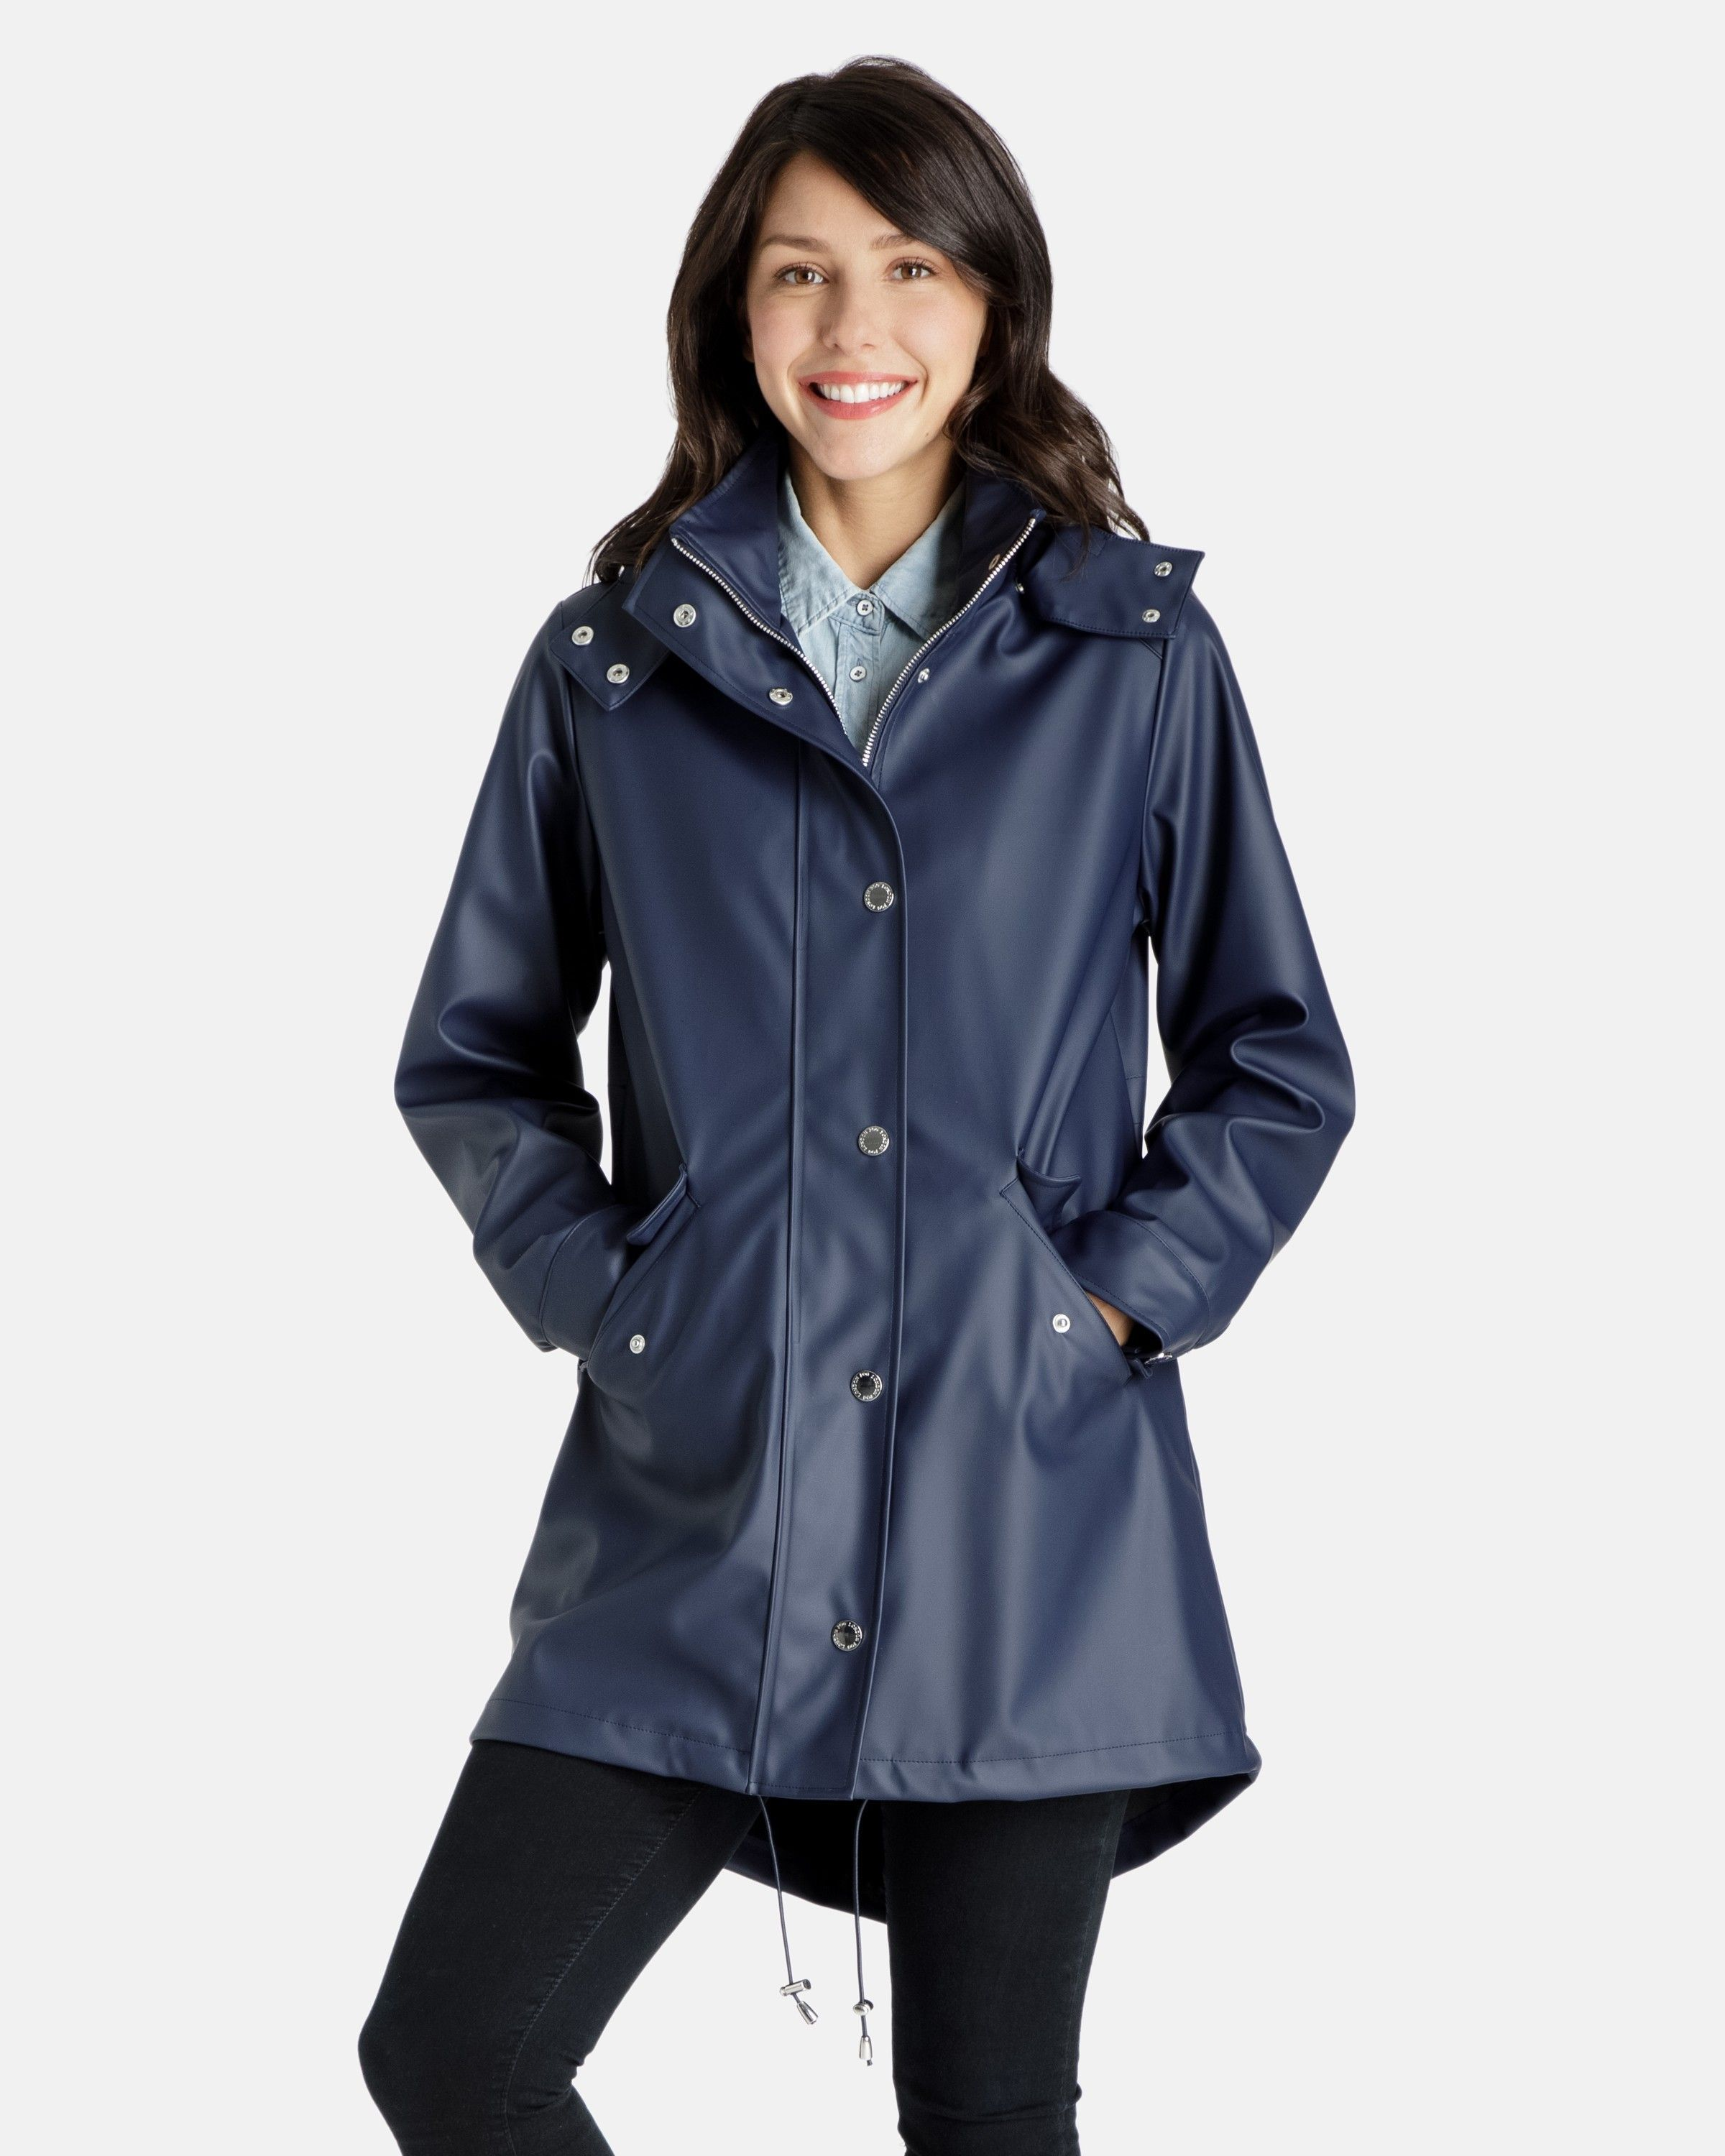 92f11f4a696 Michaela Rubberized Rain coat with Removable Hood - View All - Coats for  Women - Women  RaincoatsForWomenCloset  RaincoatsForWomenHoods